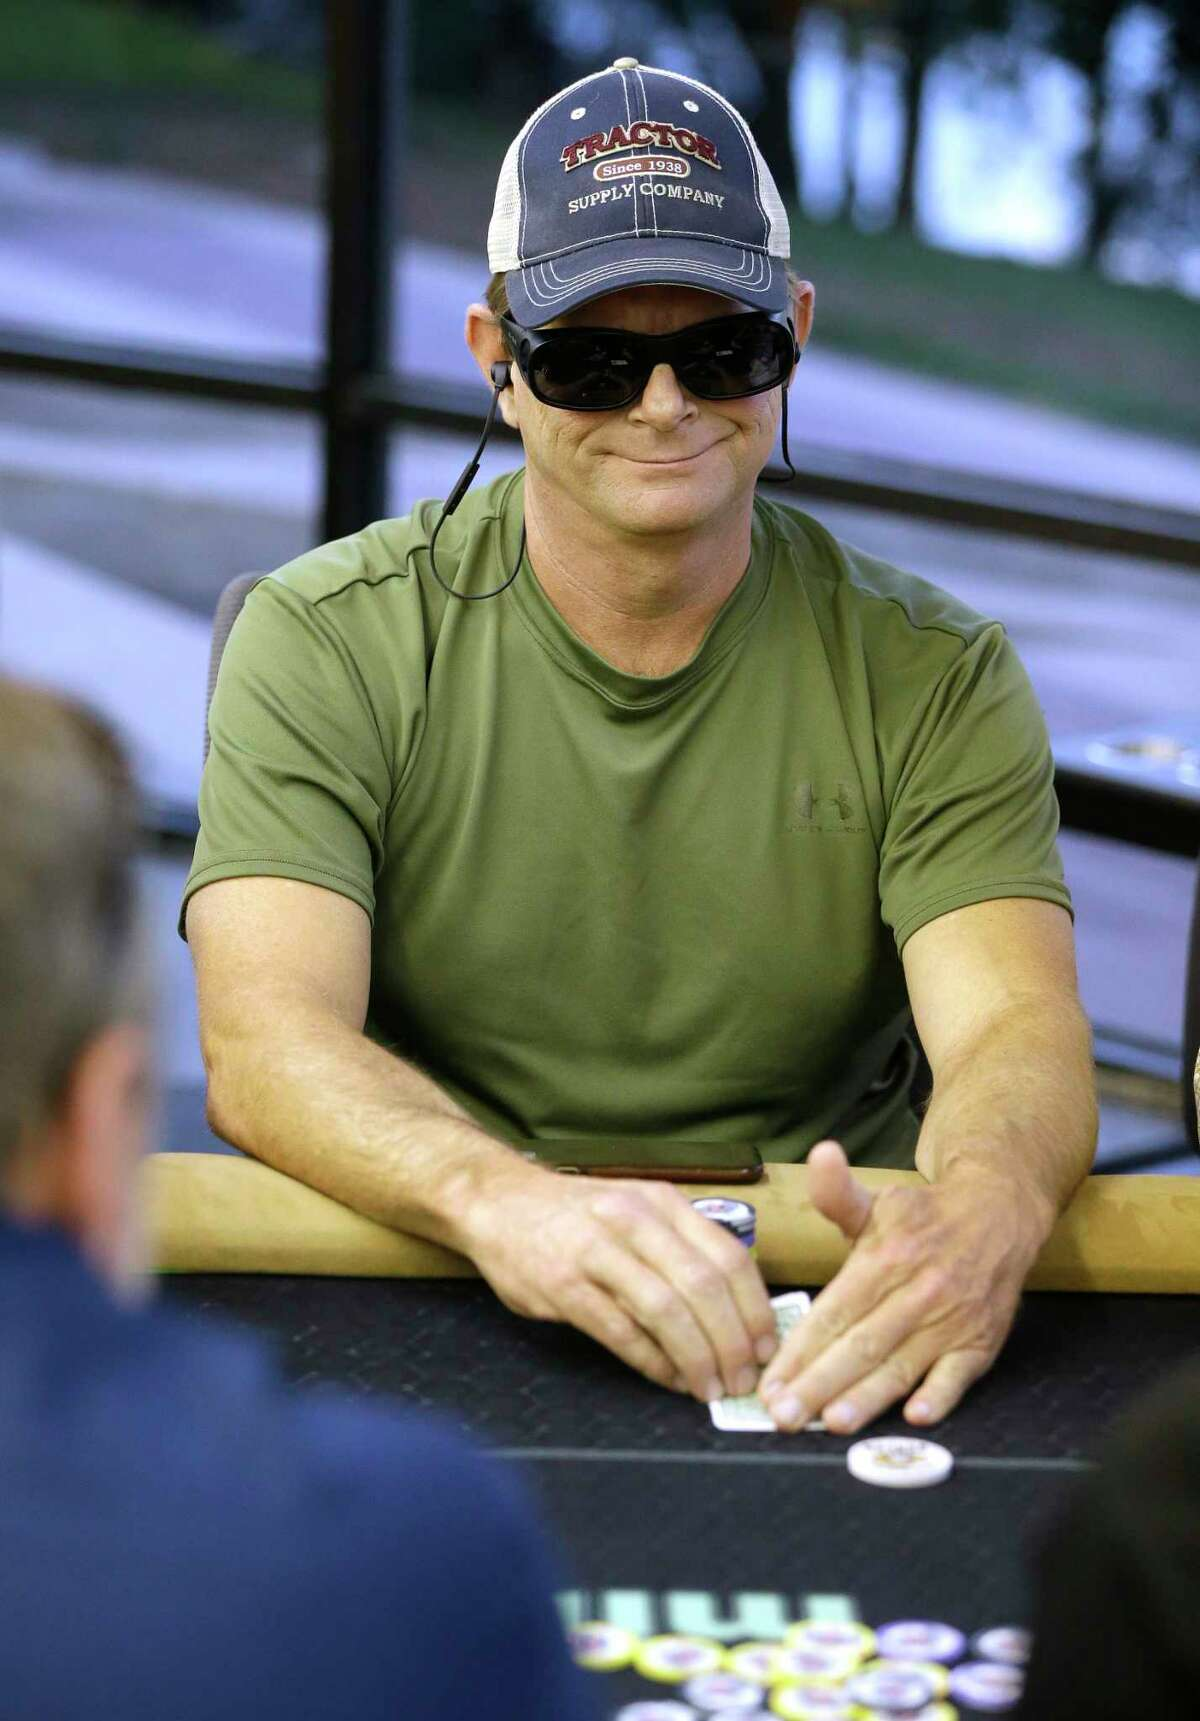 John Cornelius of Deer Park checks his cards during game at Mint Poker, which charges players a membership fee but doesn't take any share of the pots.